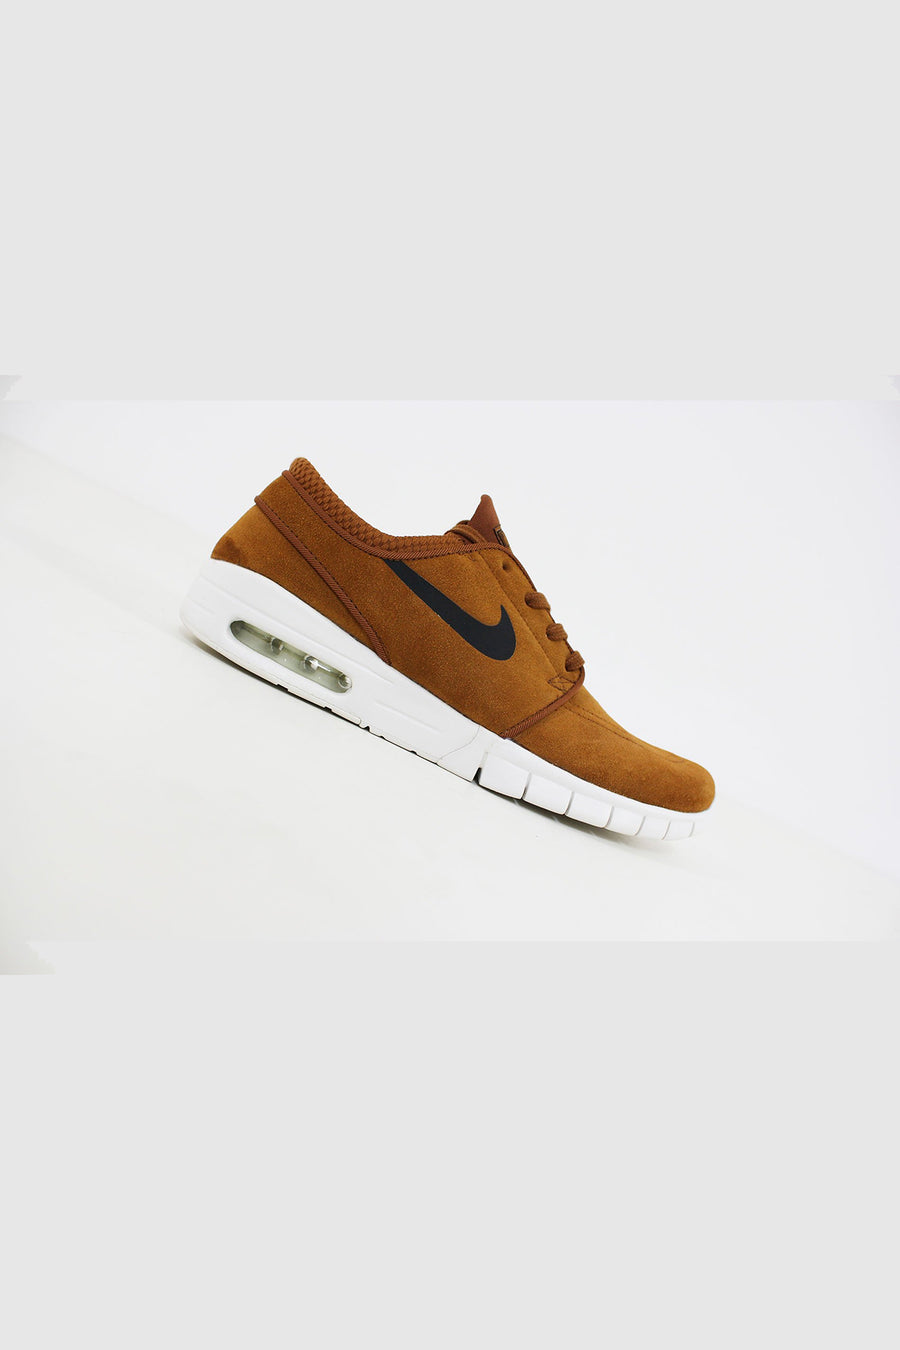 Nike - Stefan Janoski Max L (Haselnuss / Black Ivory Clay Orange) 685299-201